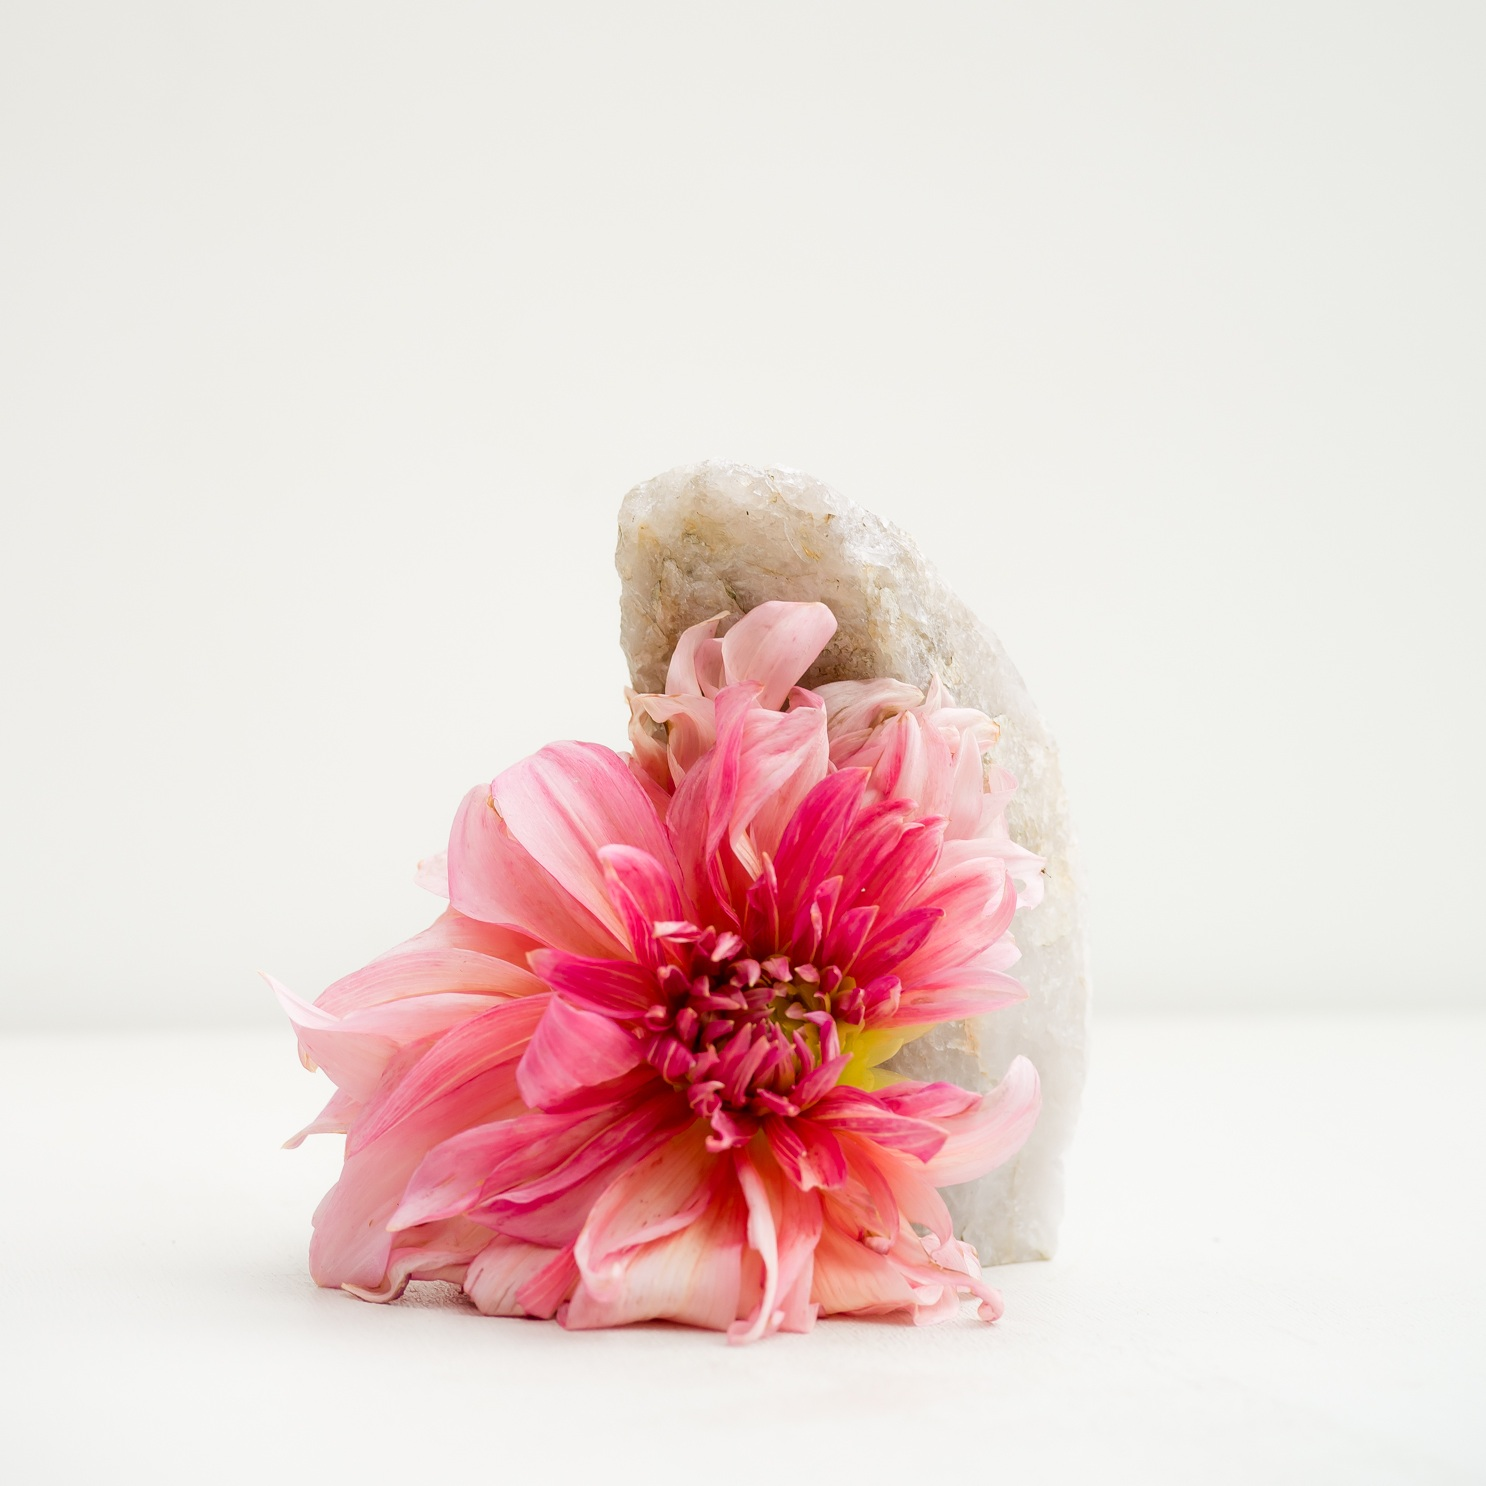 Prettiest Pink. Dahlia, 2018  Signed on verso chromogenic dye coupler print 30 x 30 inches Edition of 3 + 1AP 48 x 48 inches Edition of 3 + 1AP